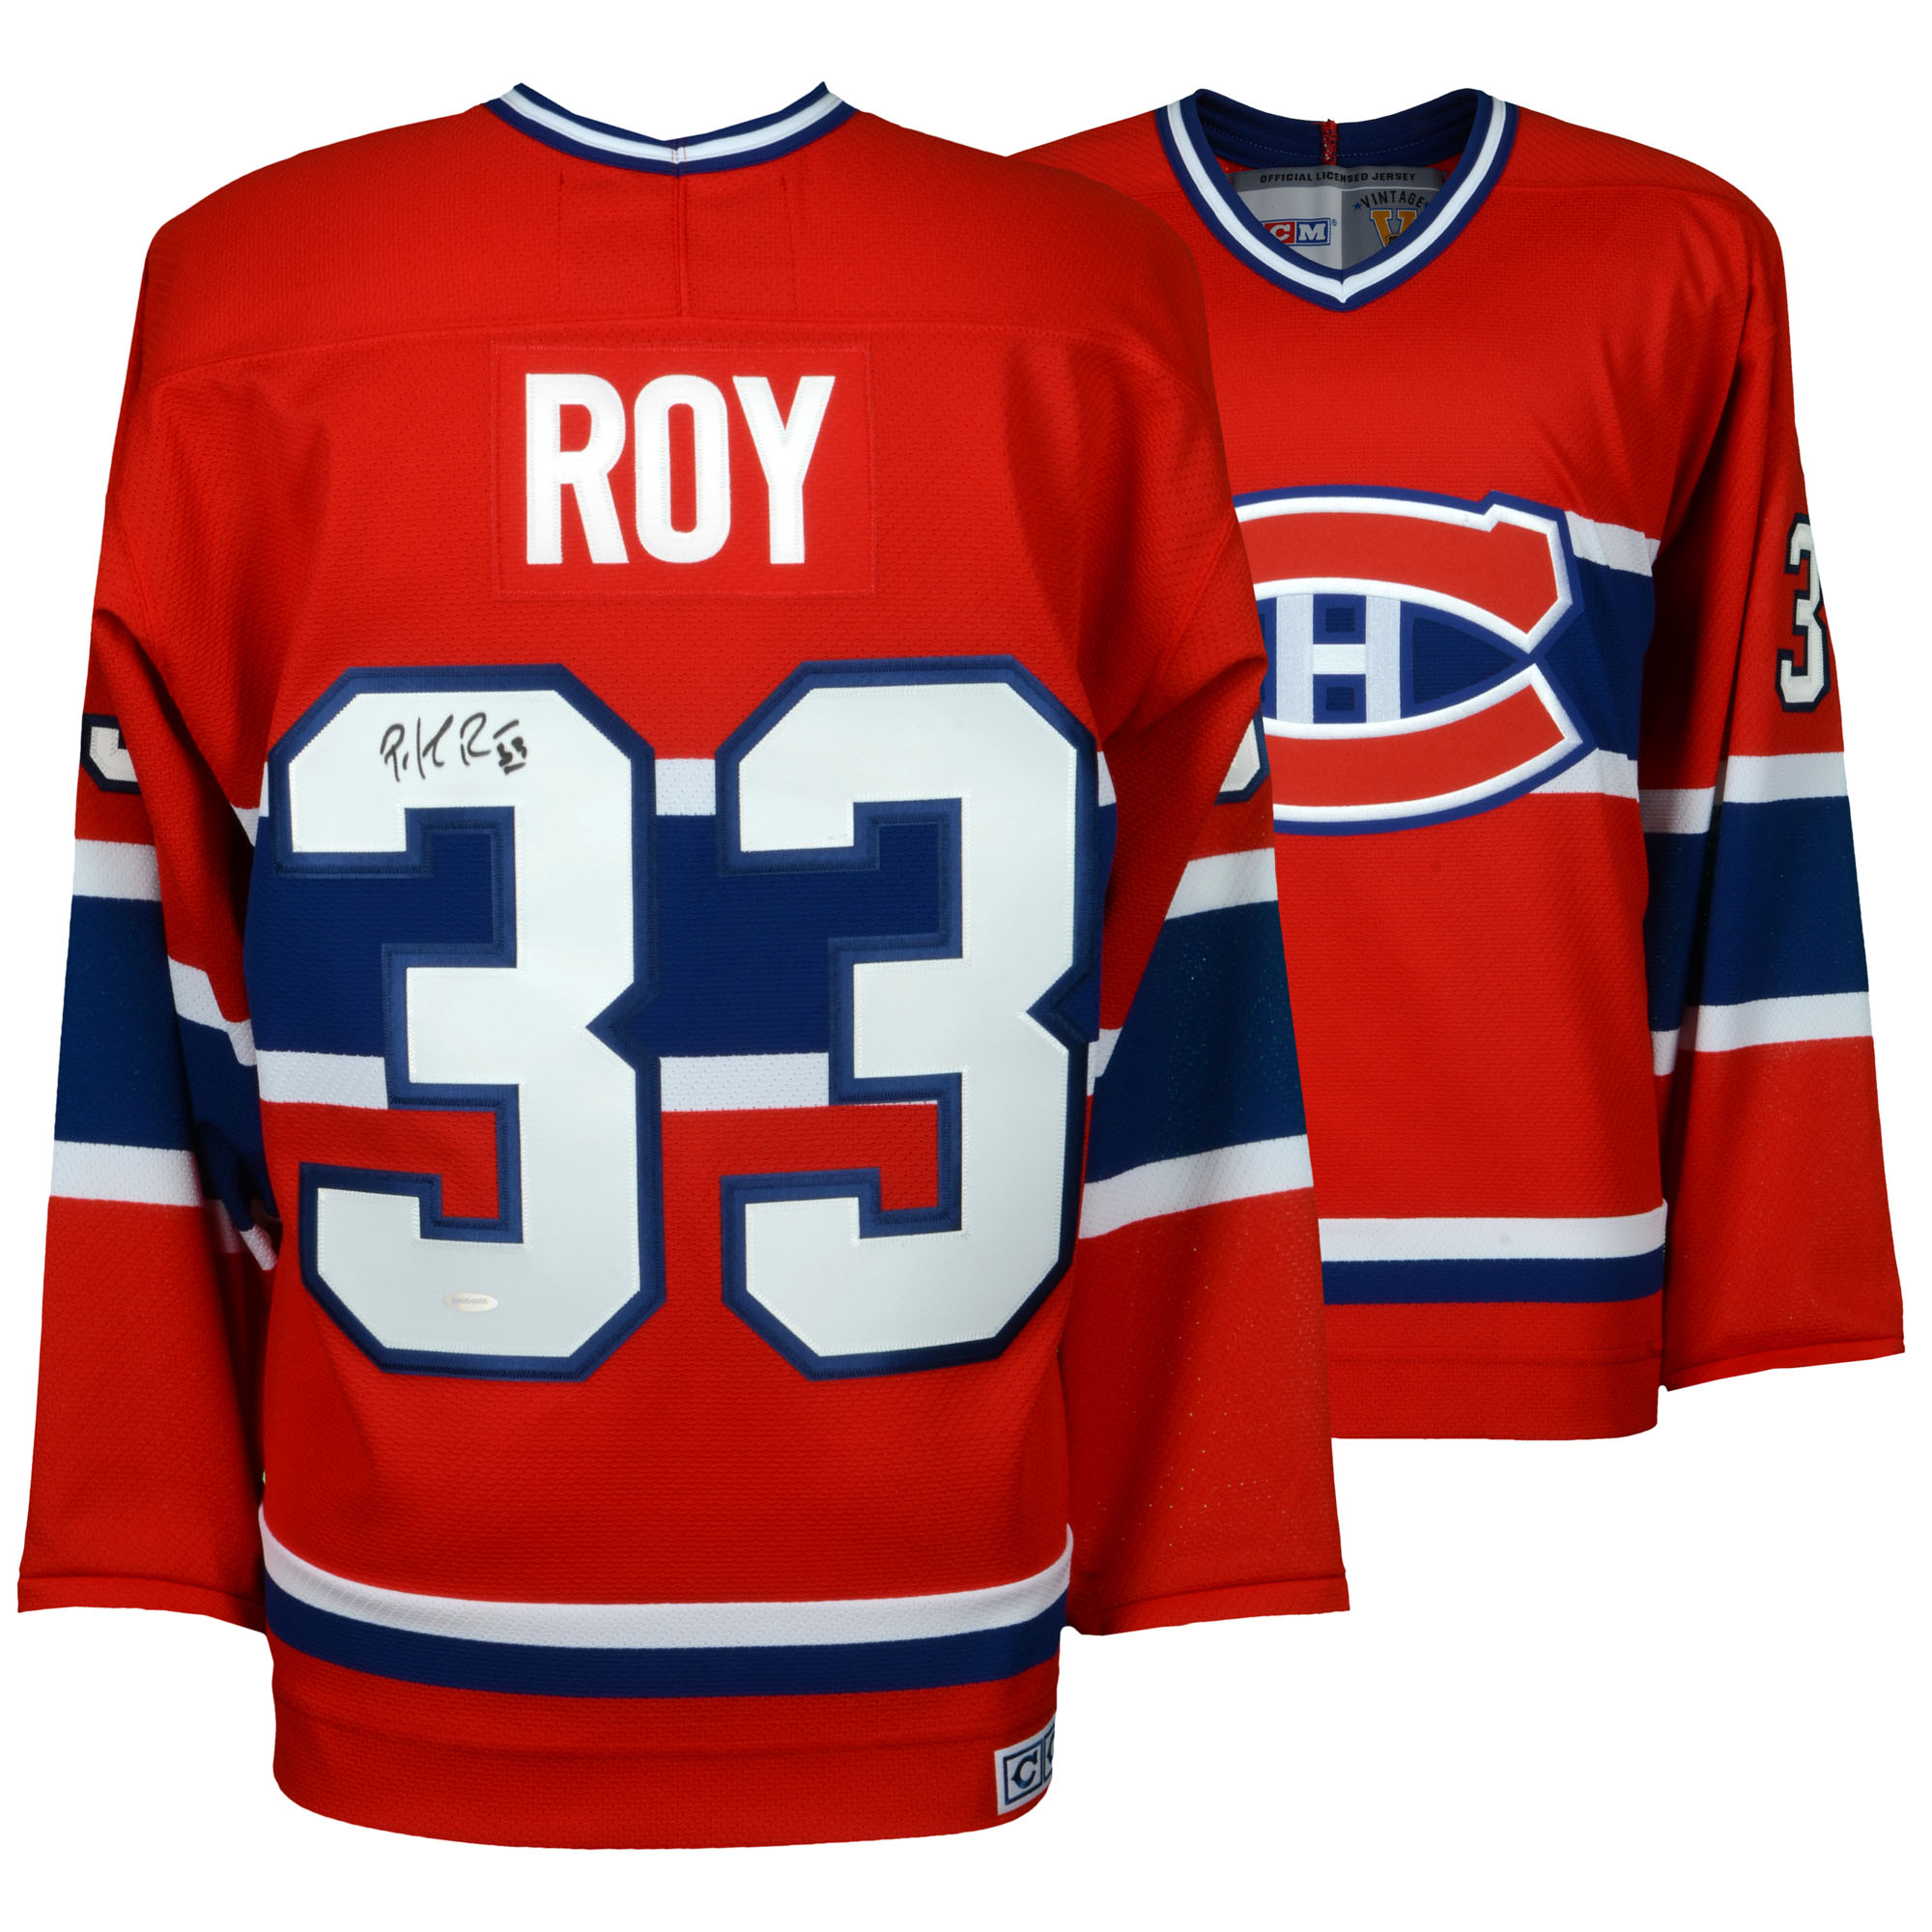 Patrick Roy Montreal Canadiens Autographed Centennial Red Jersey - Upper Deck - Fanatics Authentic Certified